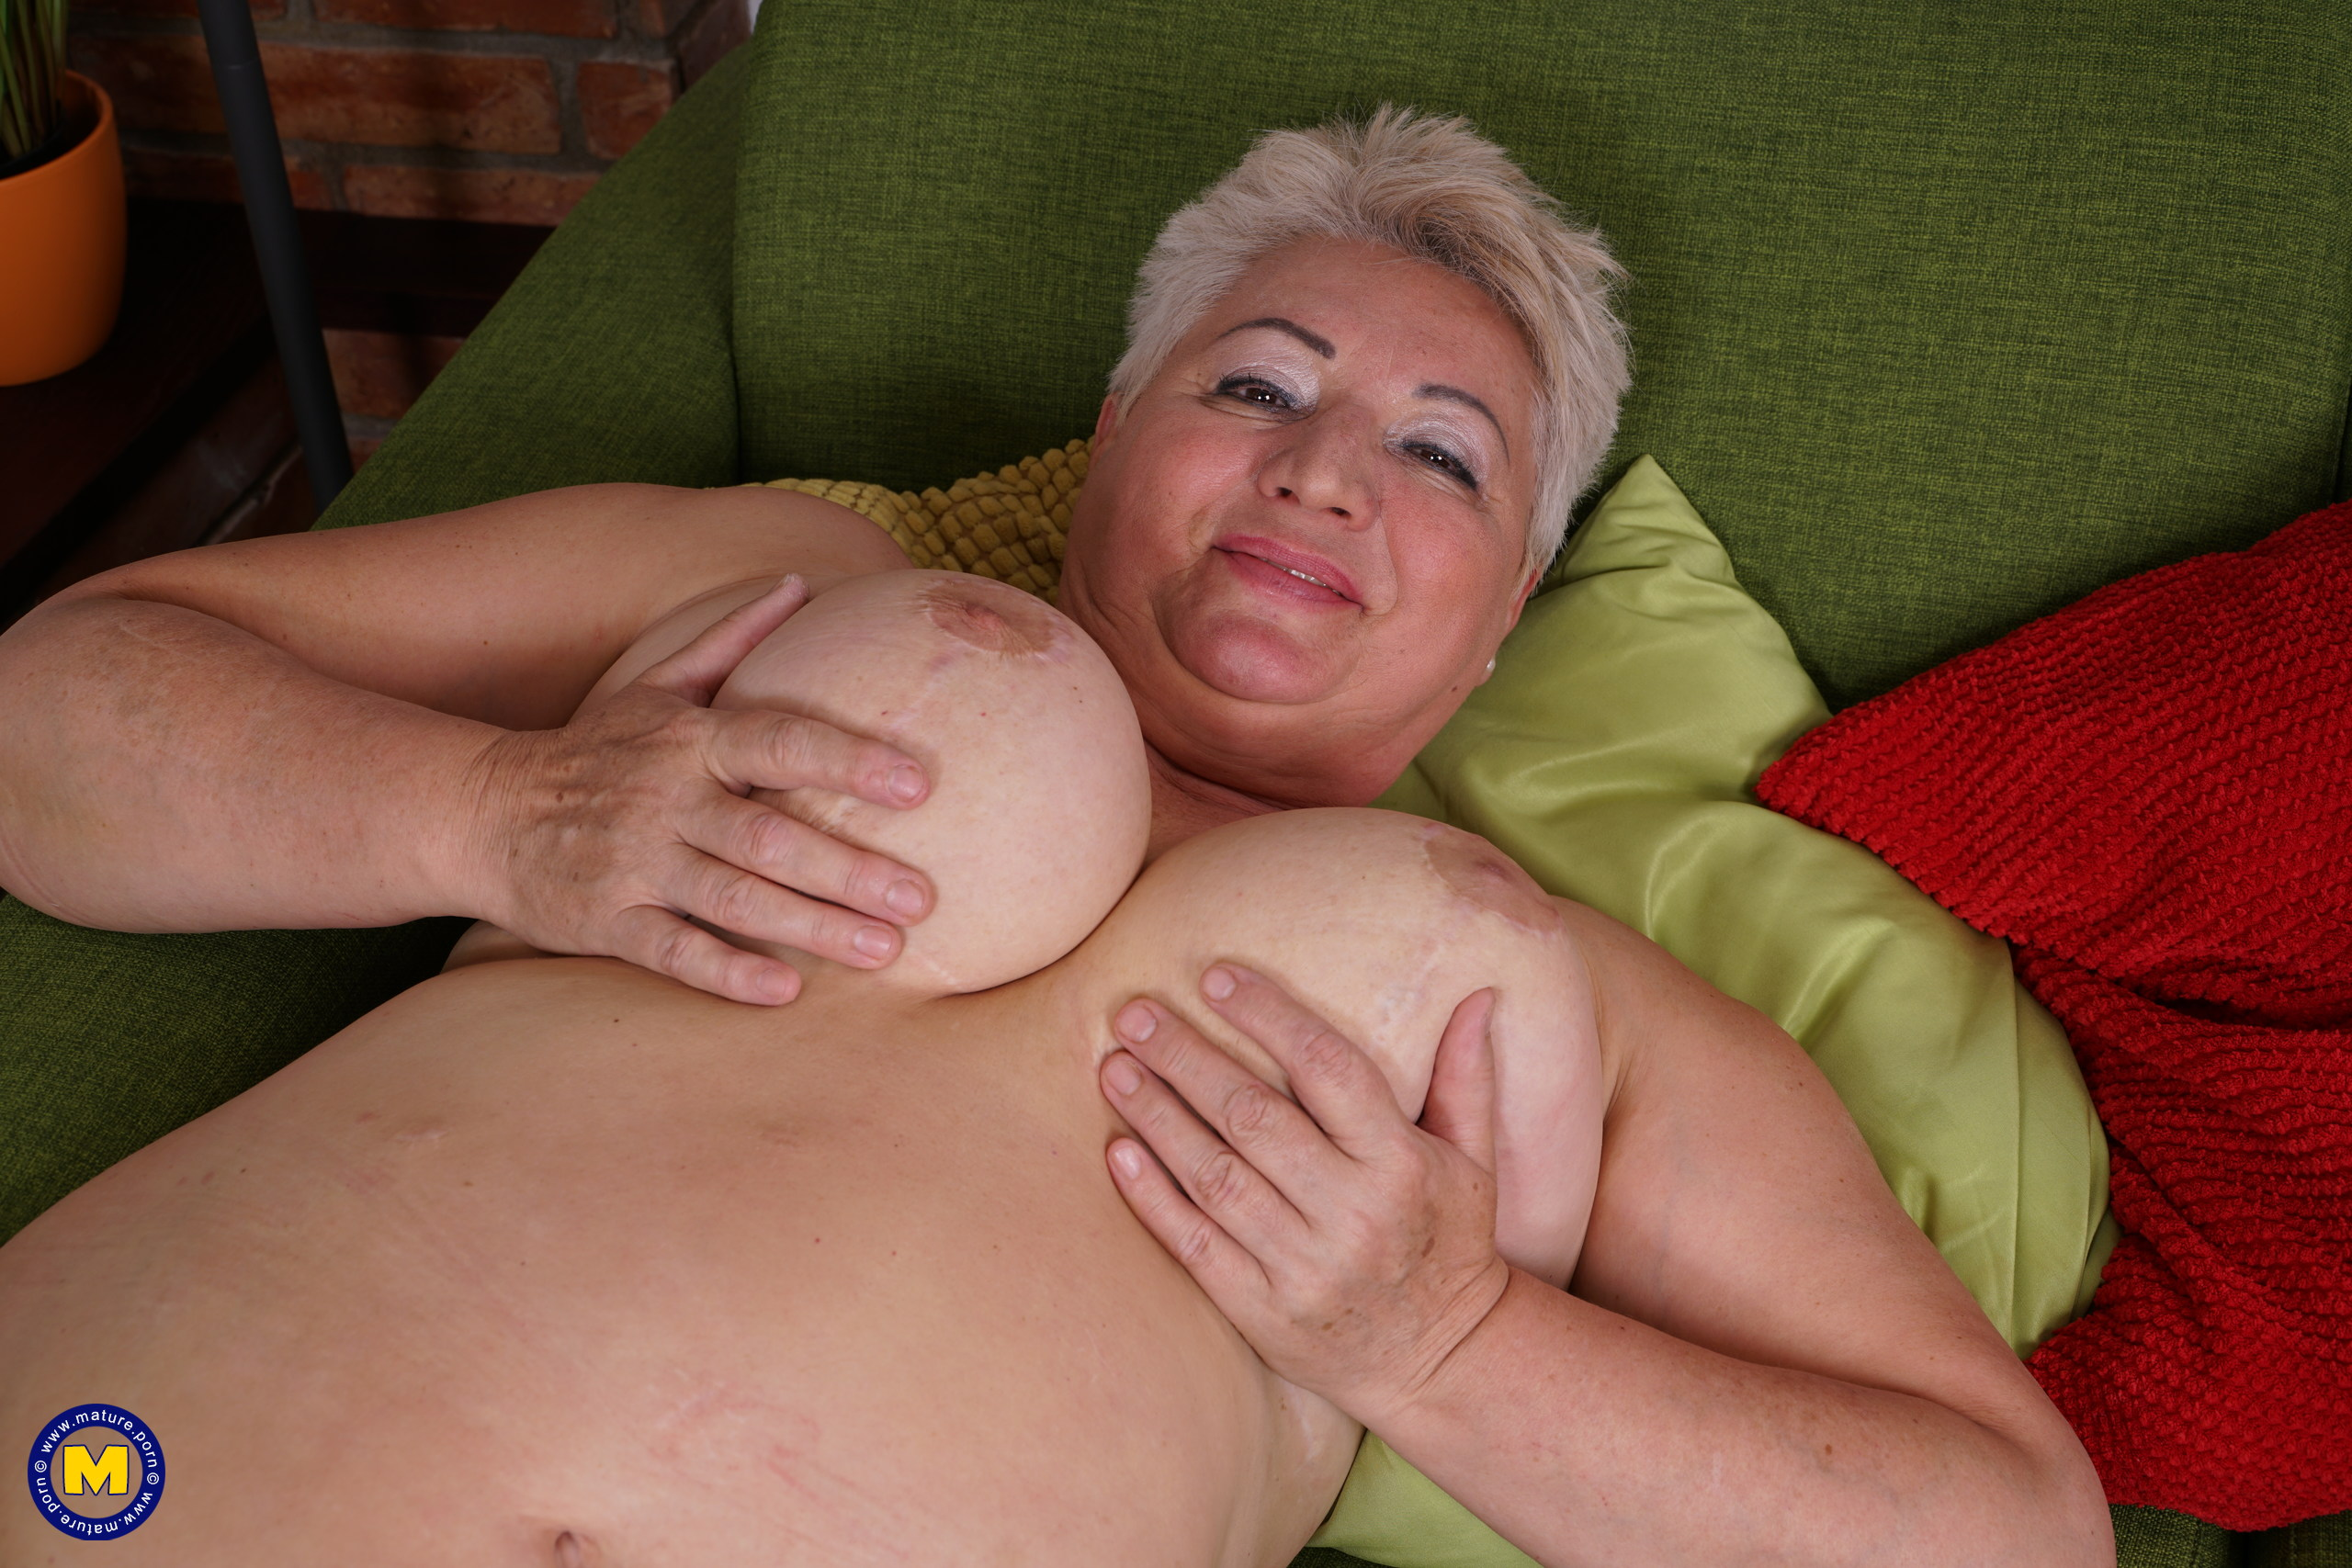 This big mama loves to play with her wet pussy